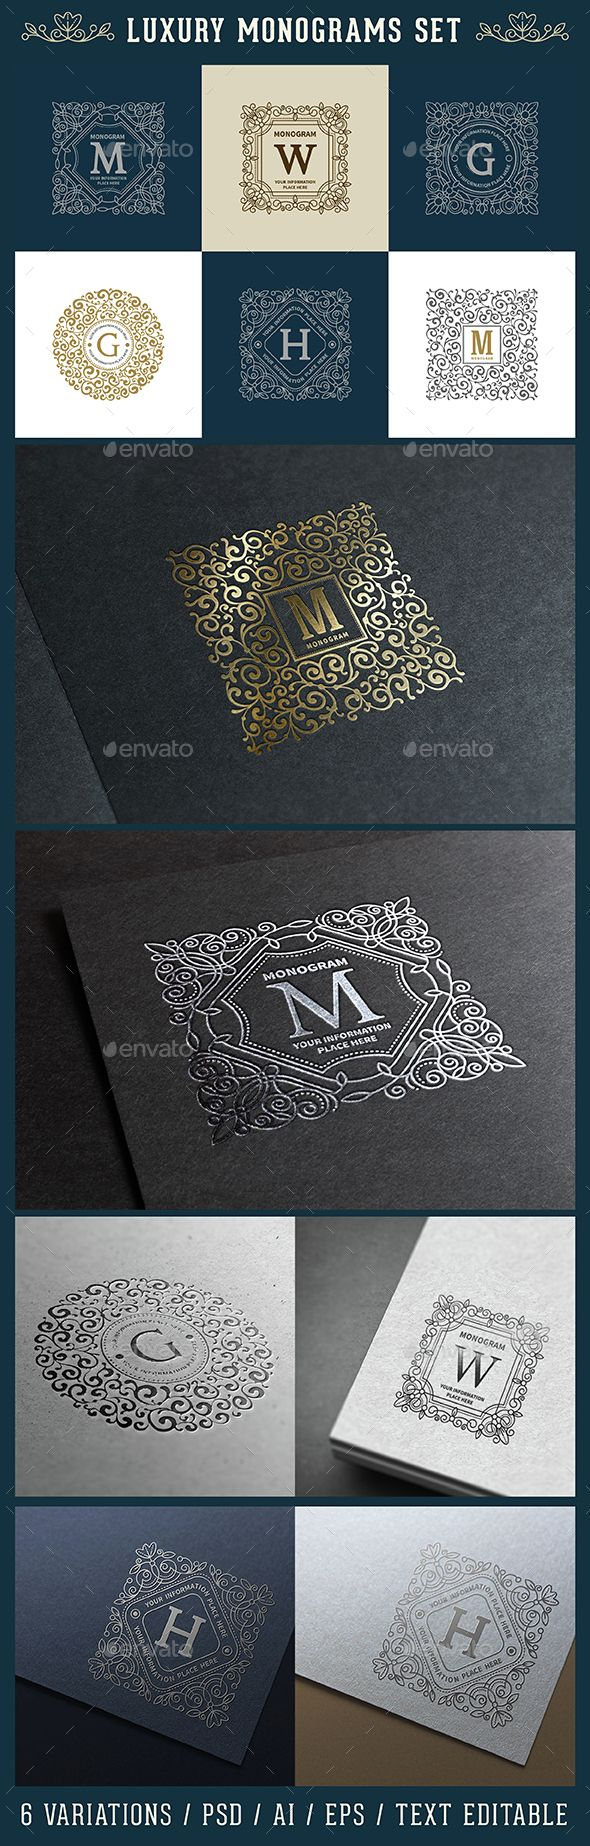 Luxury Logo and Monogram Set Template PSD, Vector EPS, AI. Download here: http://graphicriver.net/item/luxury-logo-and-monogram-set/15118516?ref=ksioks